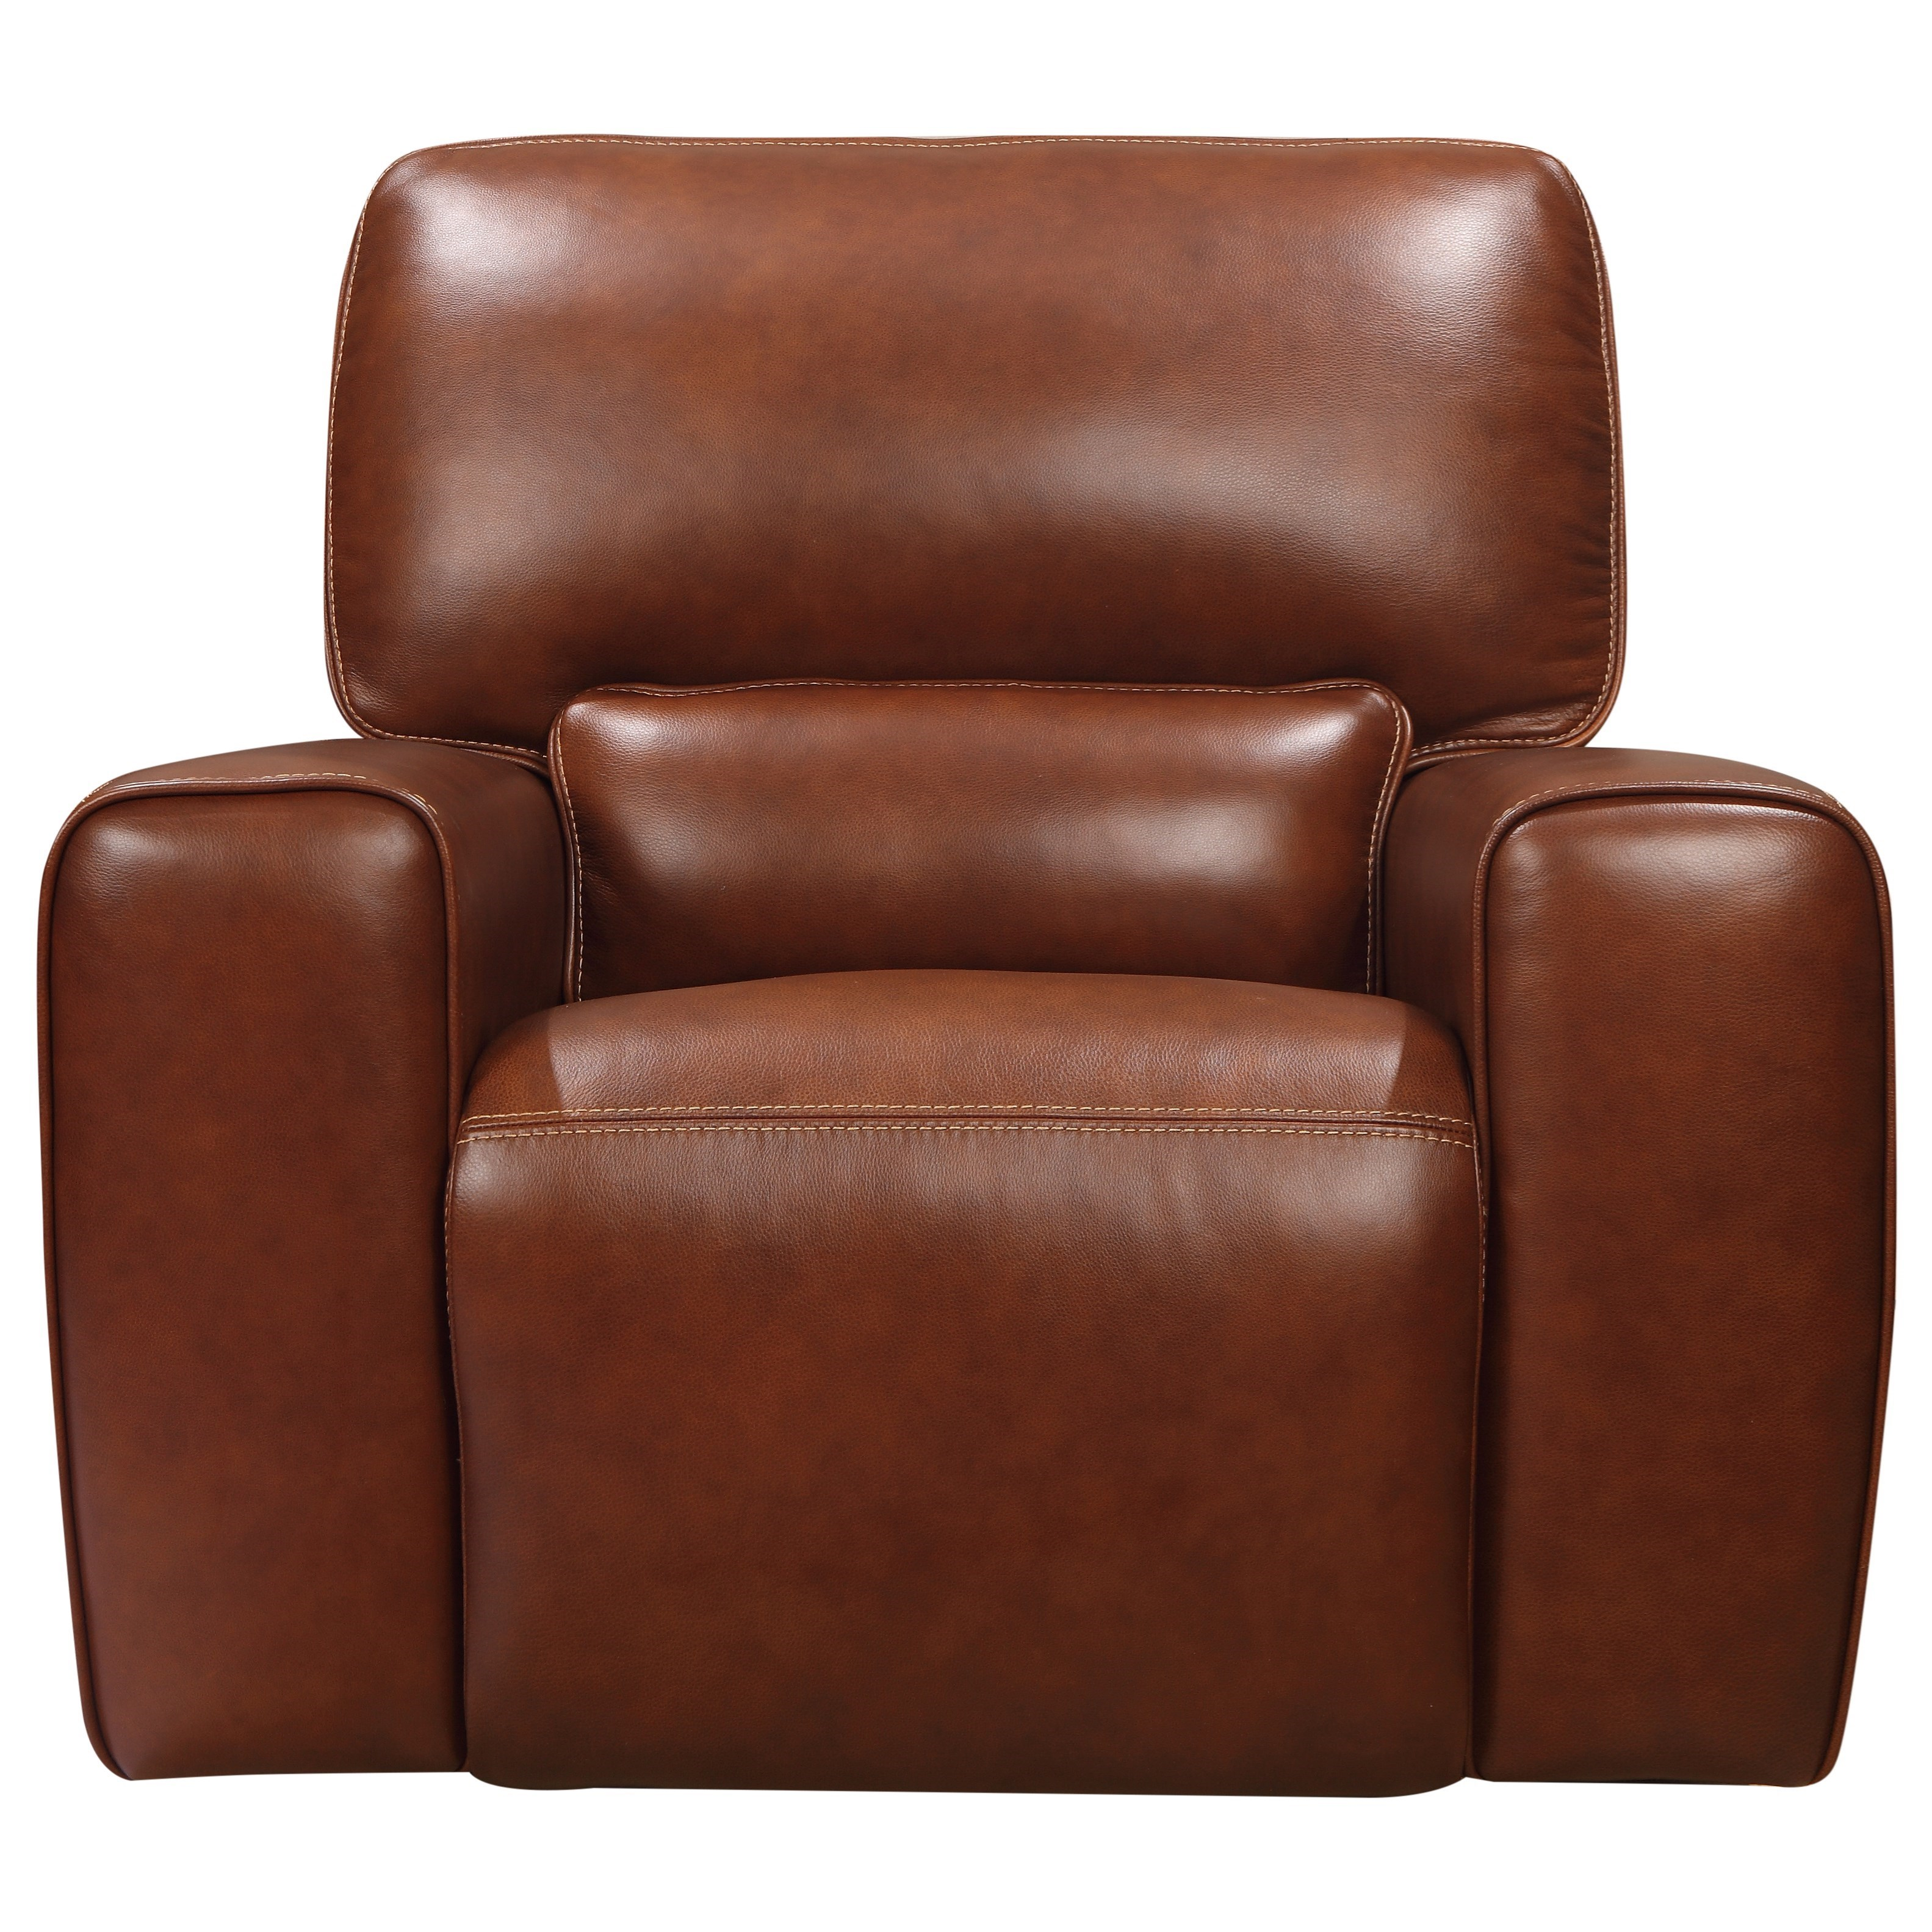 Broadway Power Glider Recliner by Leather Italia USA at Home Furnishings Direct